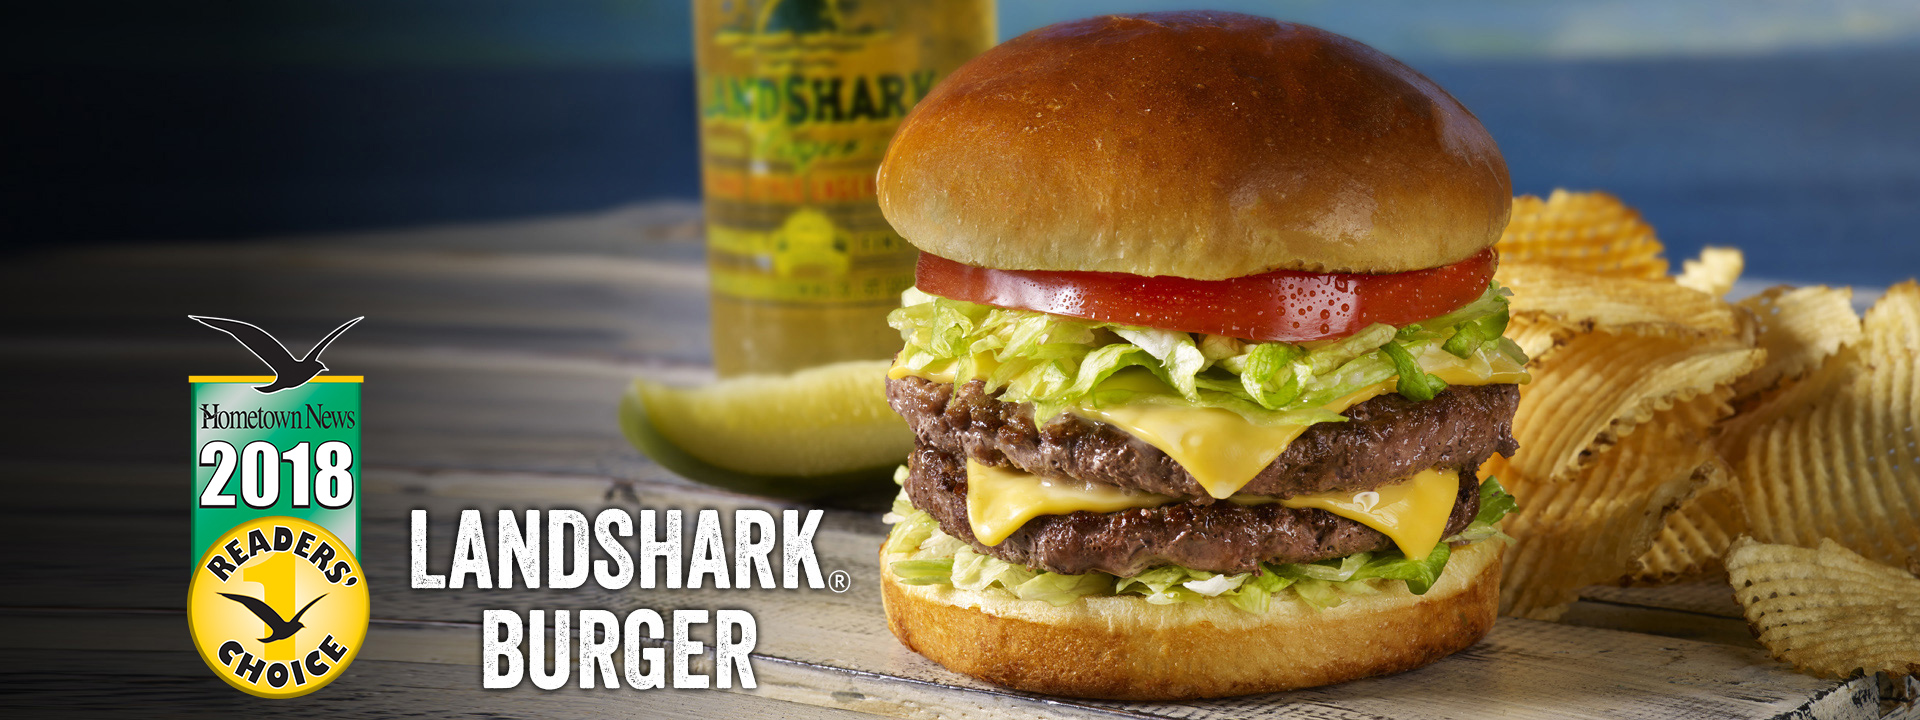 lsdb_landshark_burger_readers_choice_v04.jpg